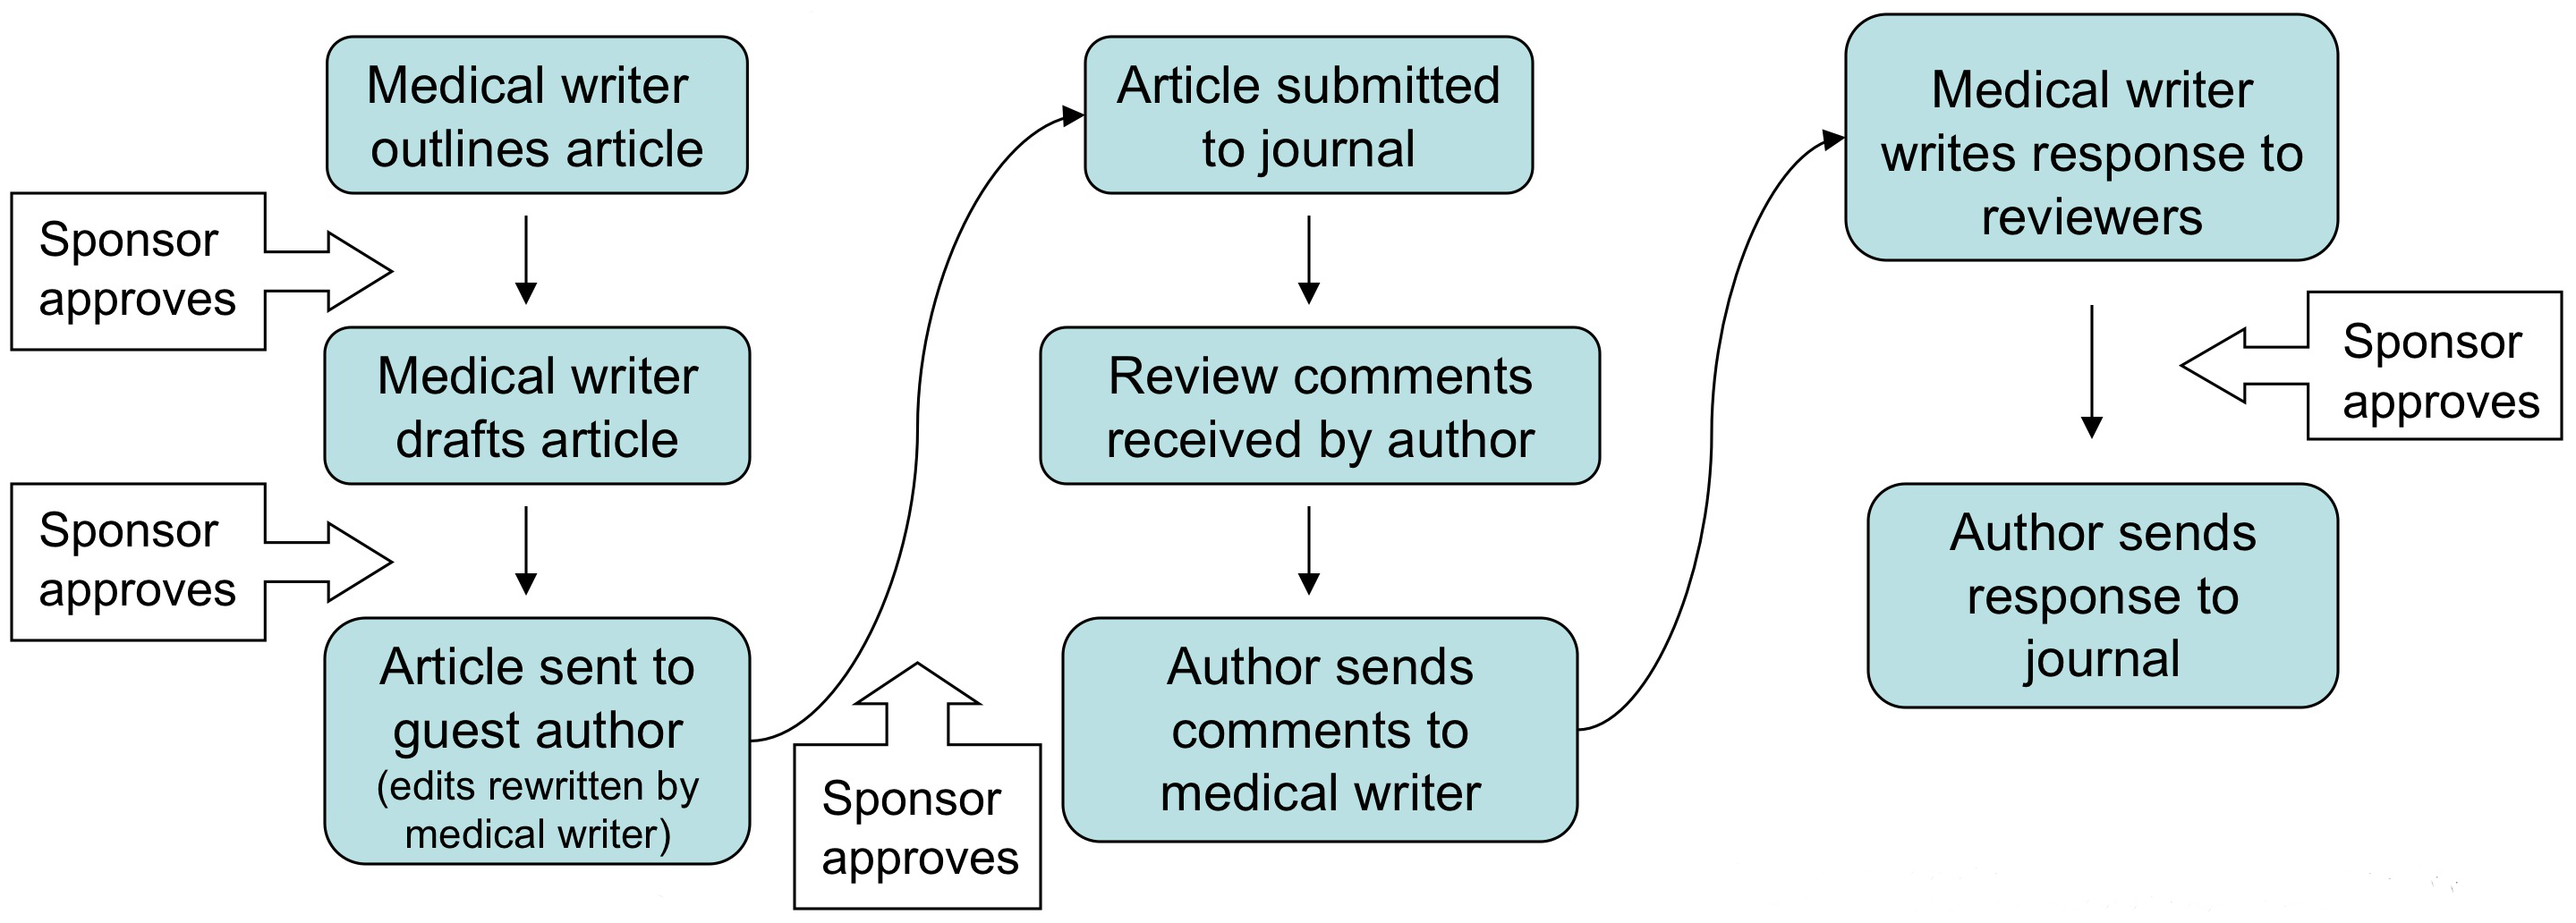 Acknowledging ghostwriters does not accurately reflect their authorship role.